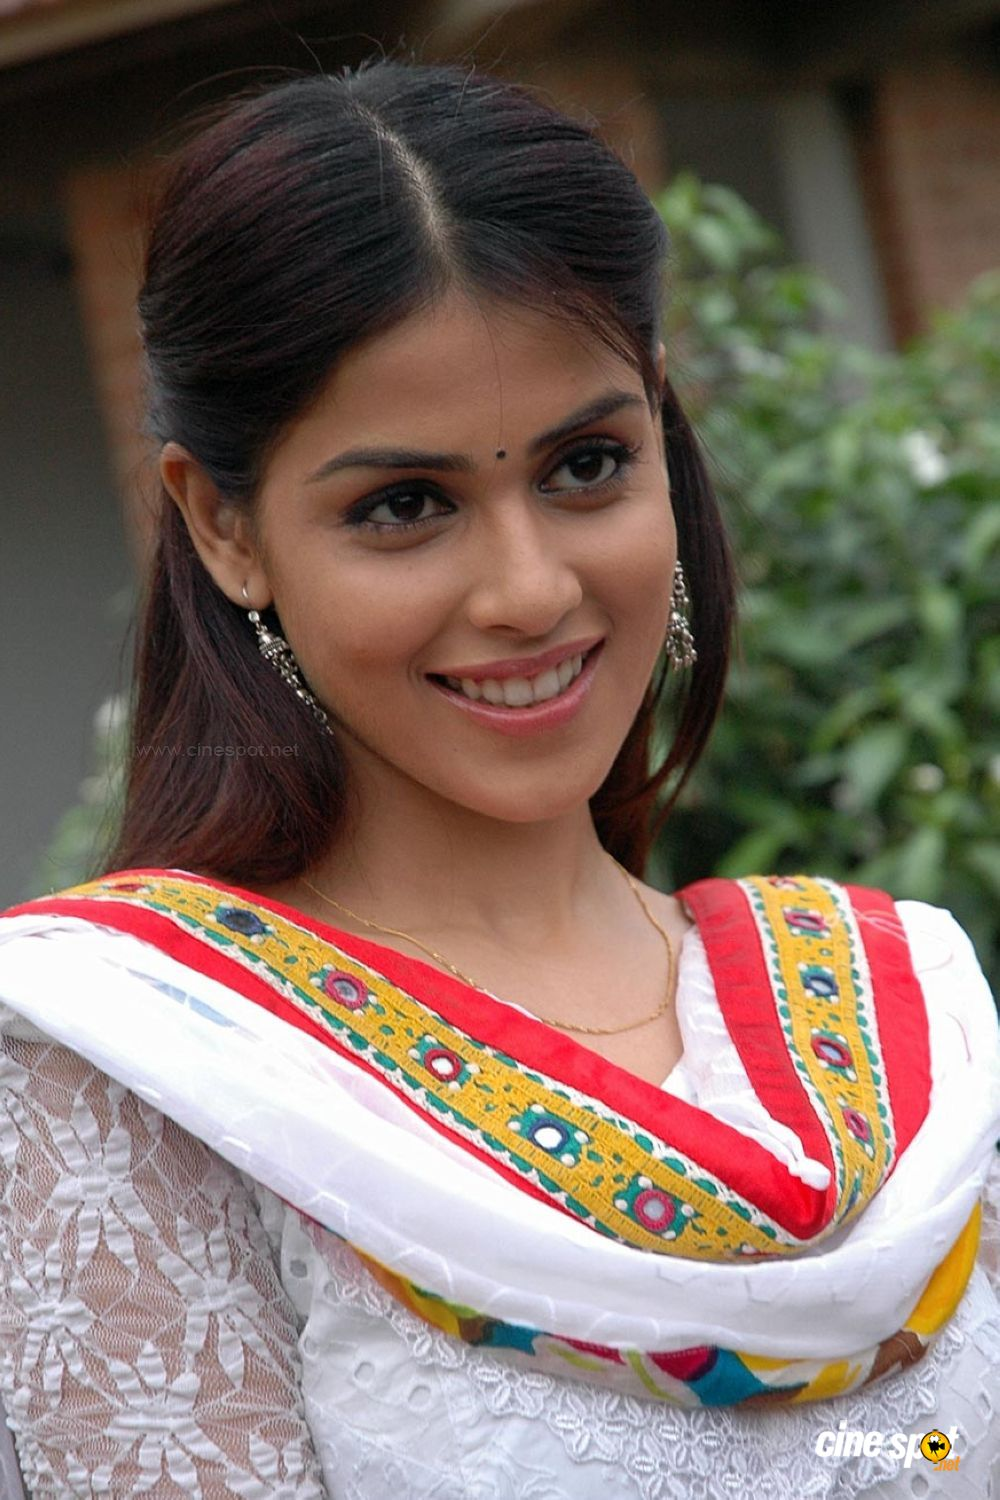 Related to tamil actress photos pictures images of tamil actors